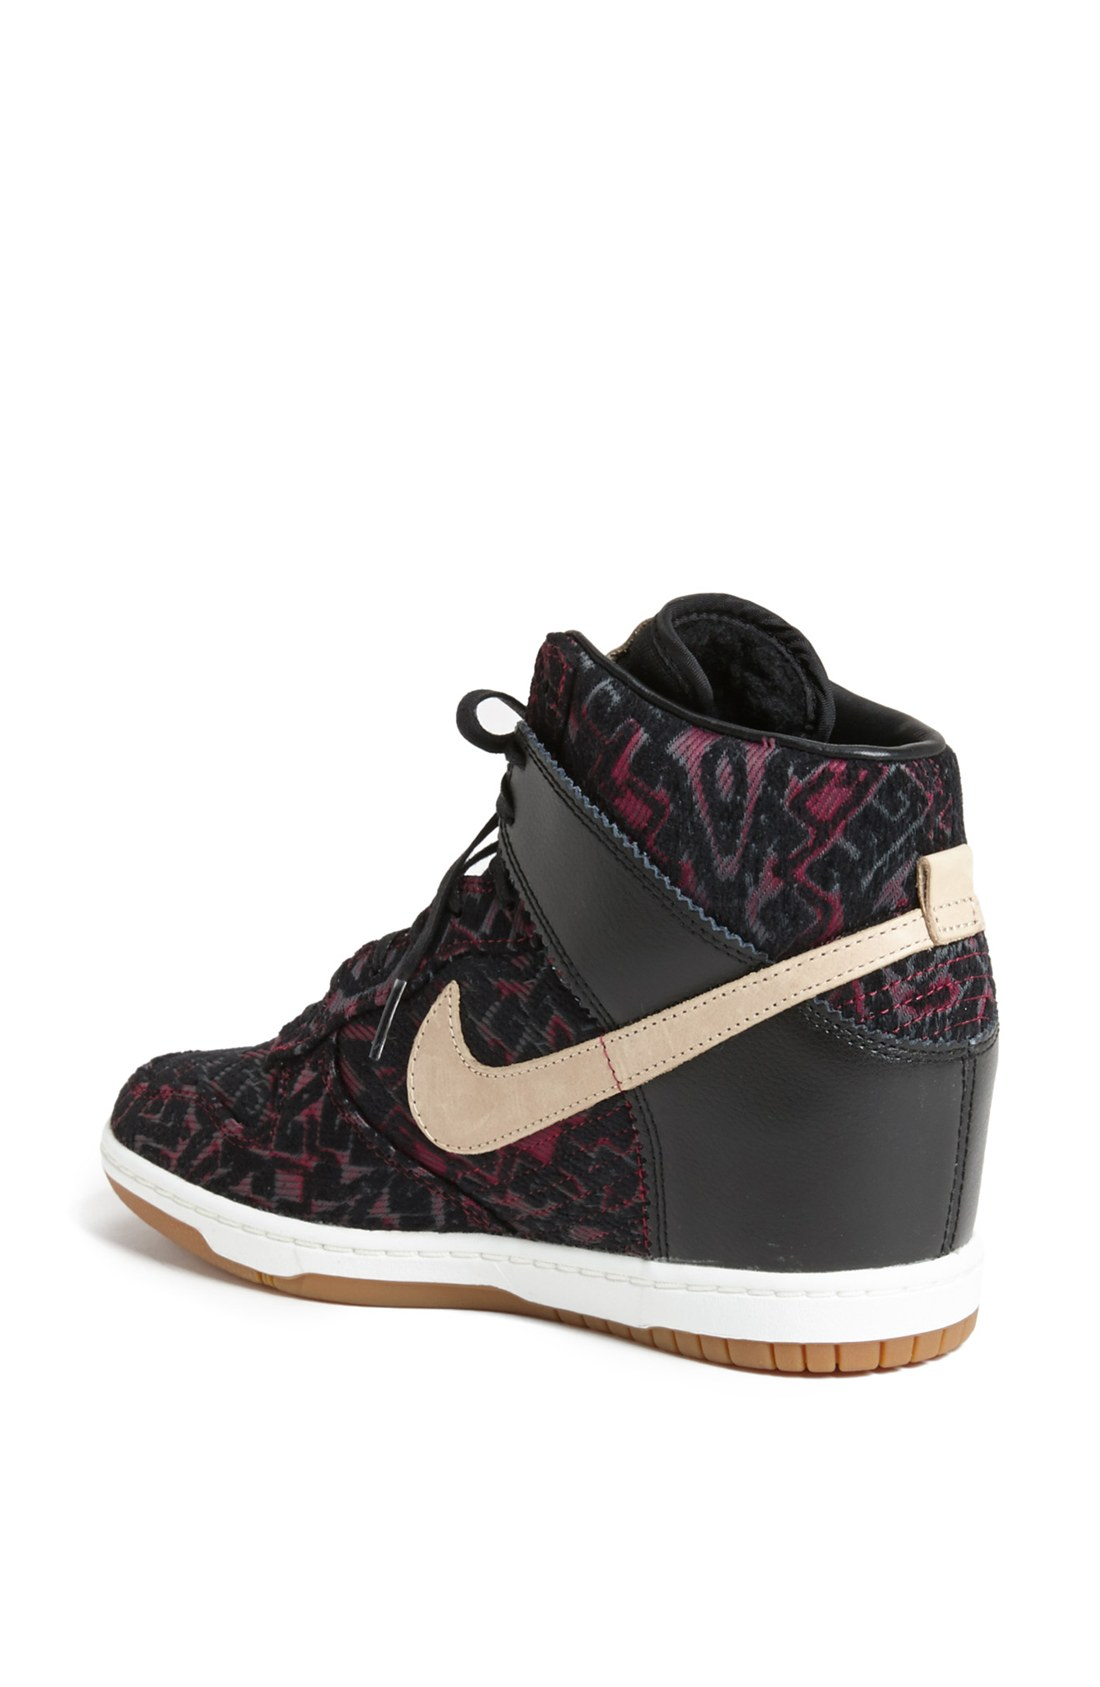 nike dunk sky hi sneaker in black lyst. Black Bedroom Furniture Sets. Home Design Ideas